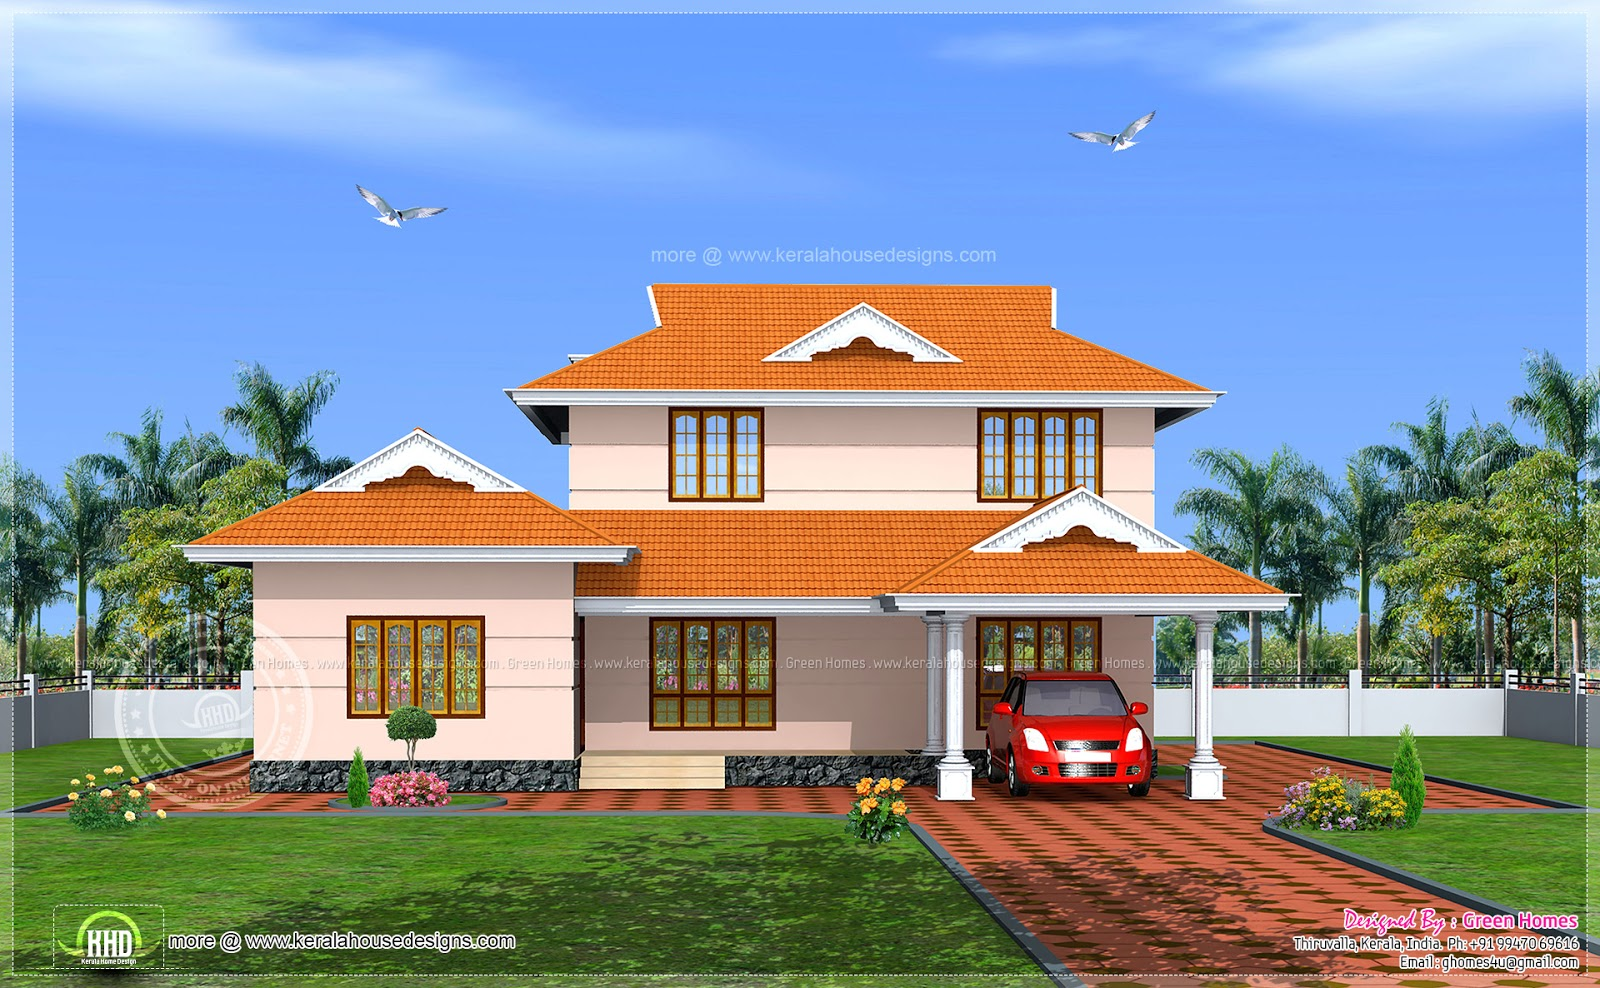 House plans and design house plans in kerala model with for Housing plans kerala